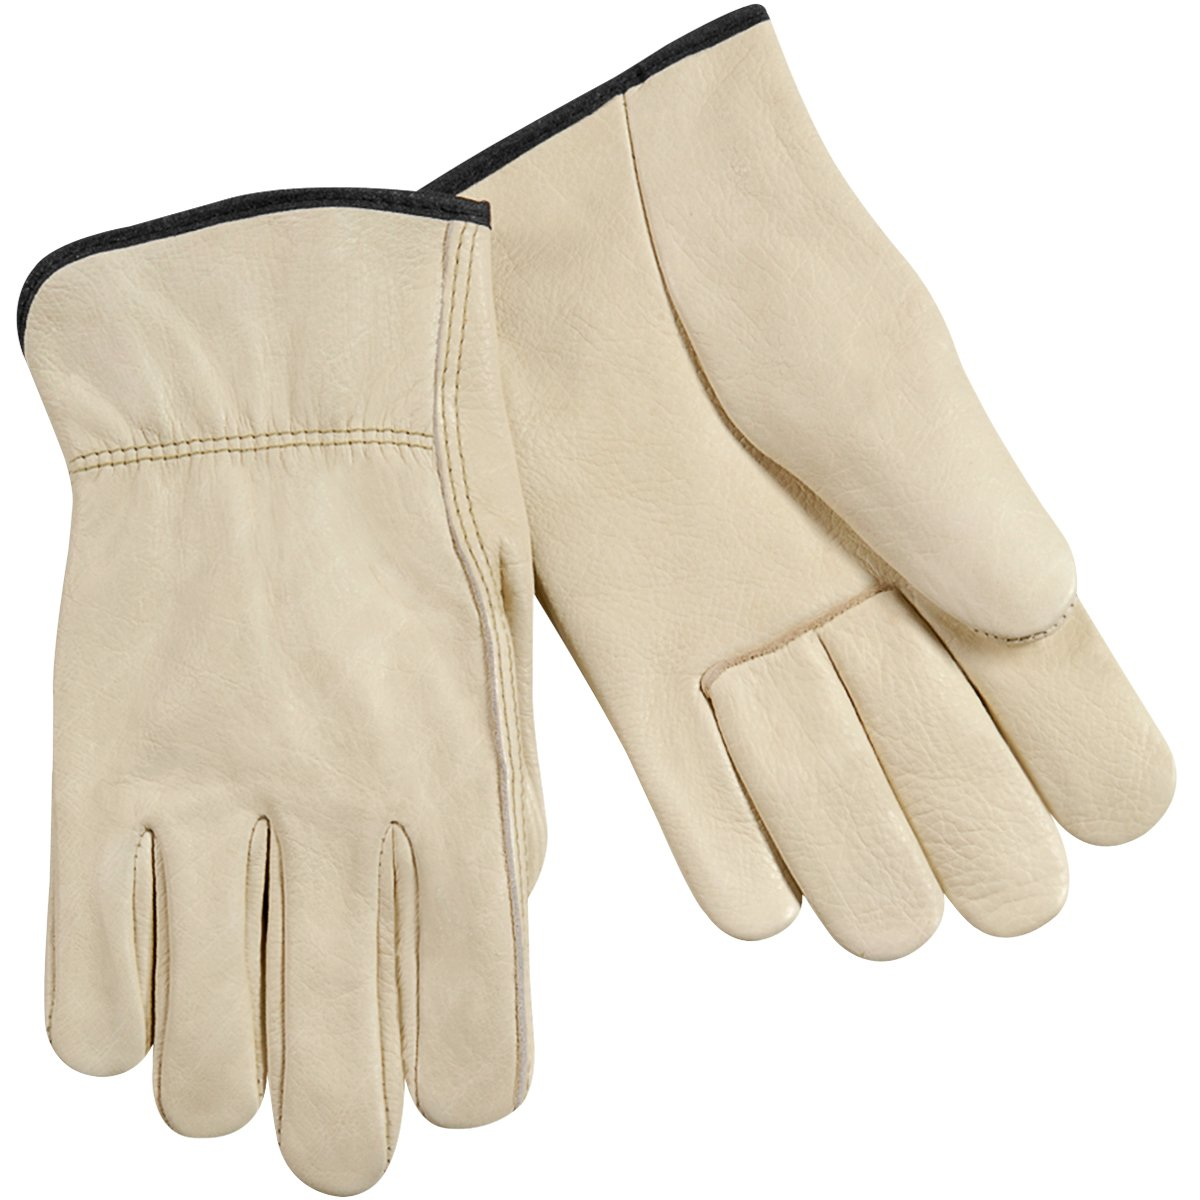 Steiner 0281-L Drivers Gloves, Individual Grain Cowhide Unlined Straight Thumb Shirred Wrist, Large (12-Pack)